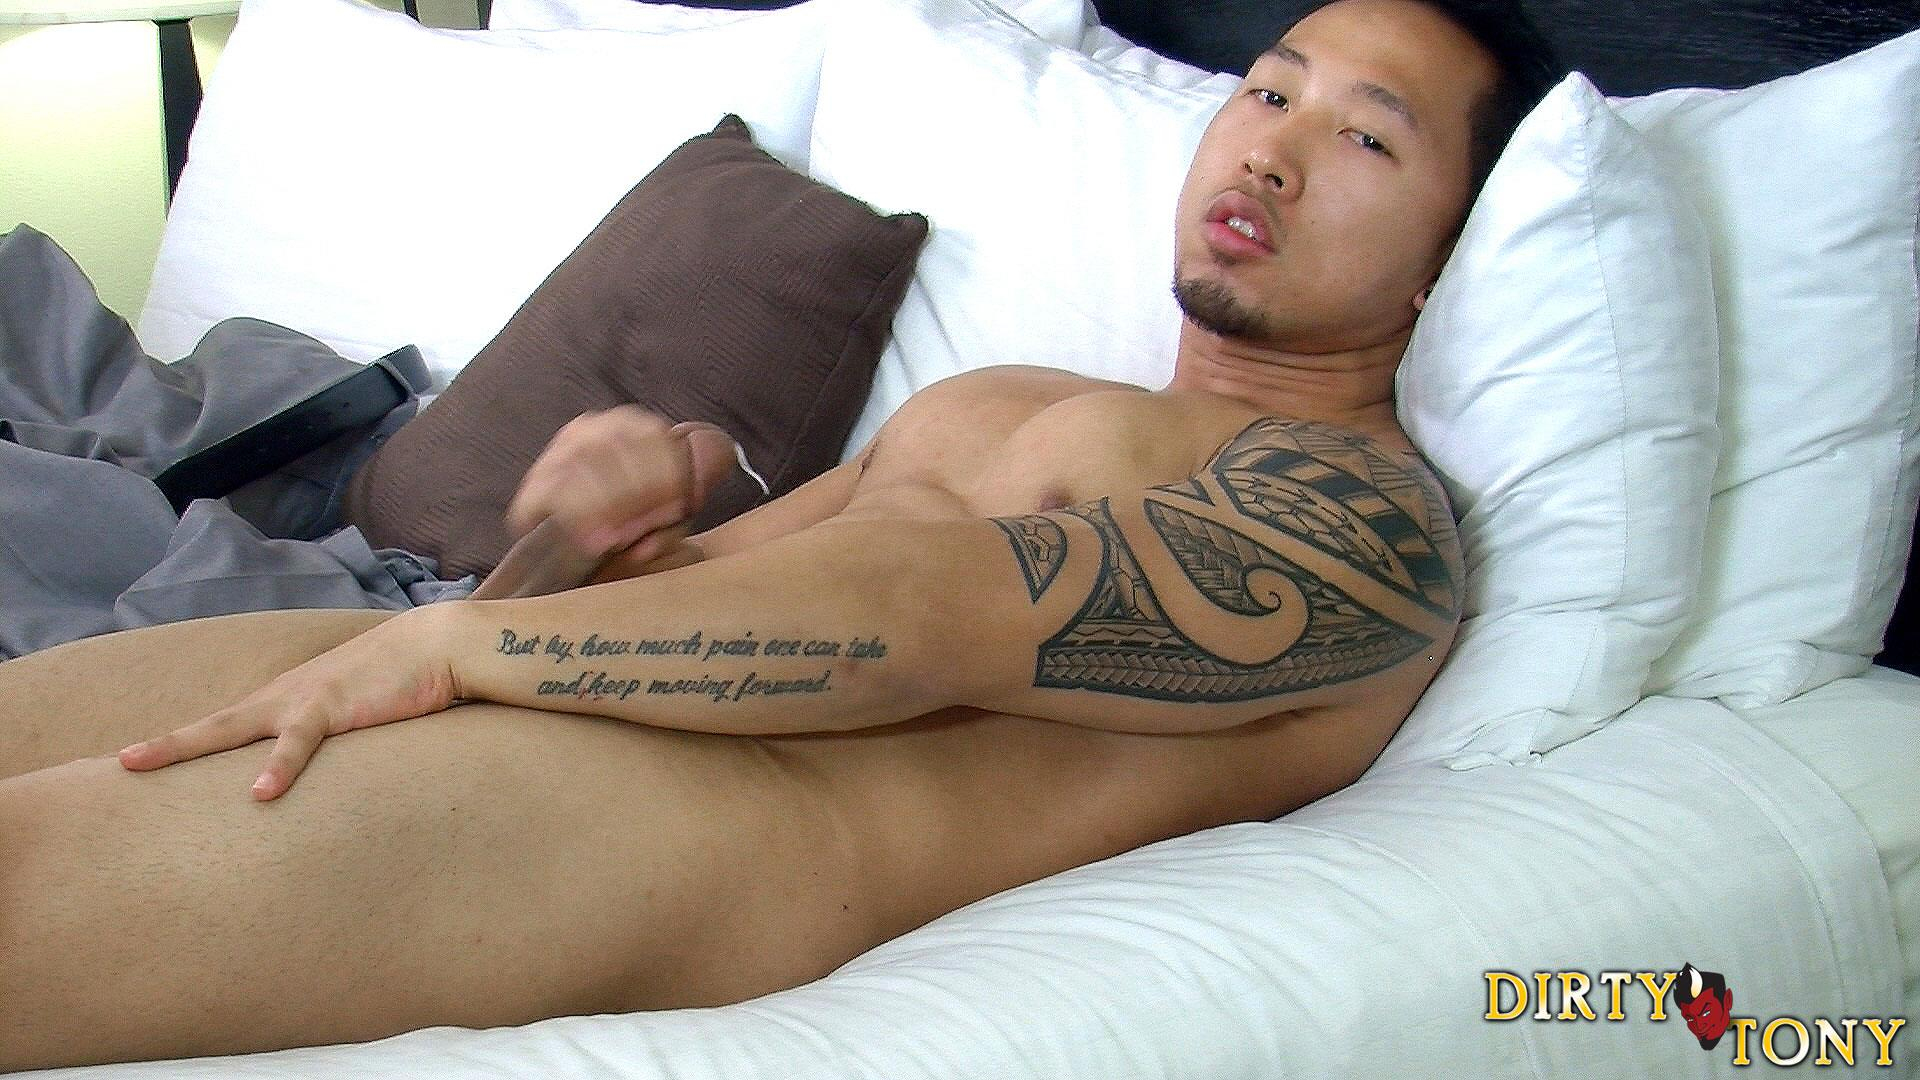 Dirty Tony Ryan Allen Asian Guy In Suit With A Big Asian Cock Jerk Off Amateur Gay Porn 15 Amateur Asian Guy In Business Suit Stroking His Huge Asian Cock